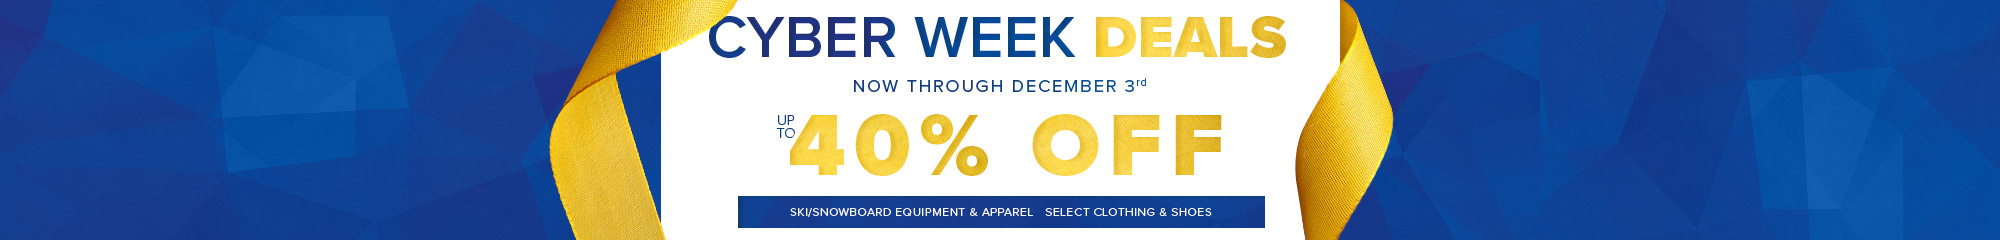 Cyber Week - Now through December 3rd up to 40% off